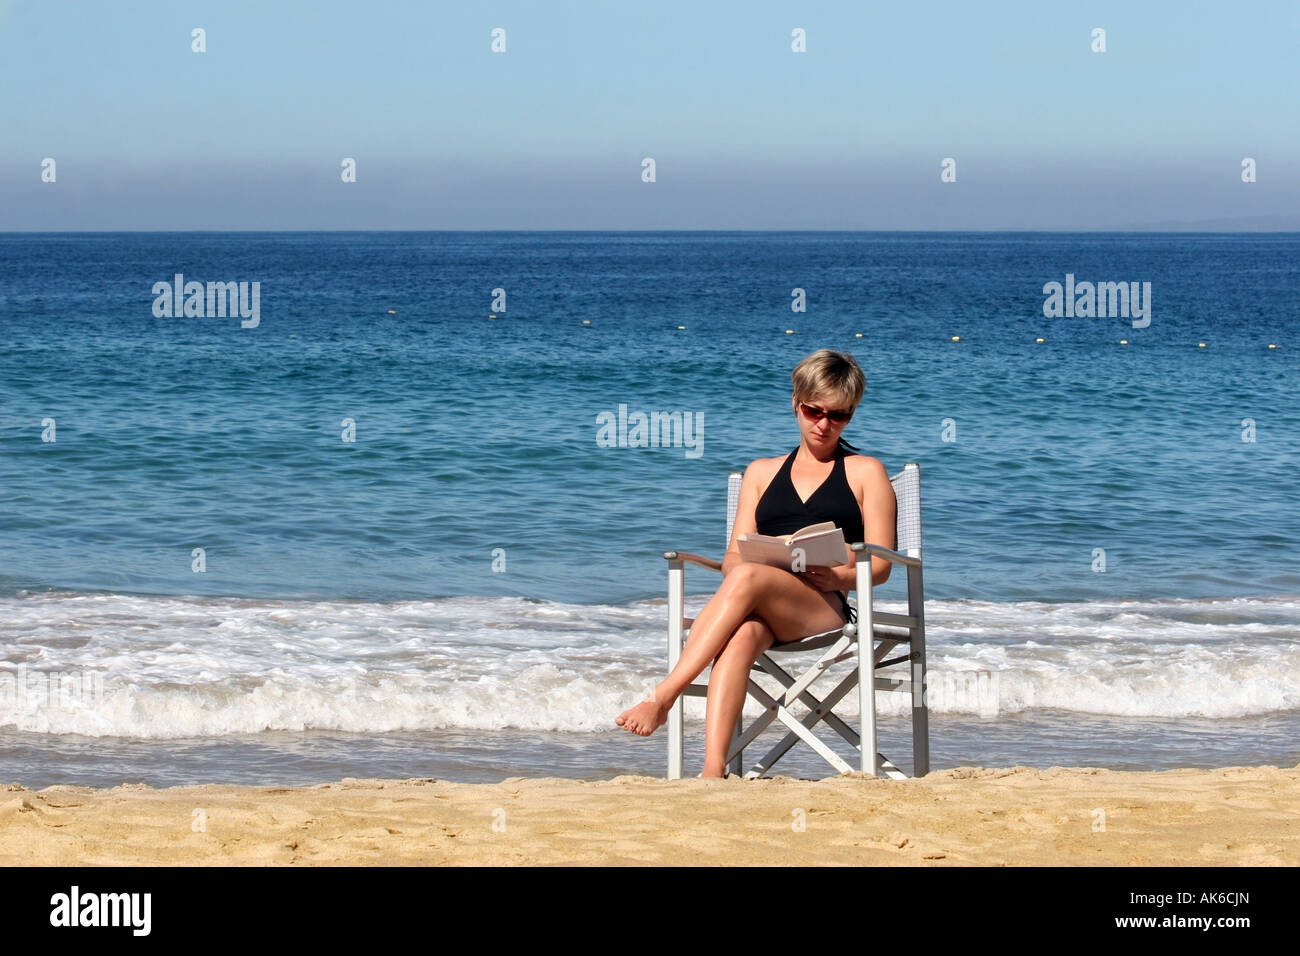 Woman relaxing on a beach - Stock Image